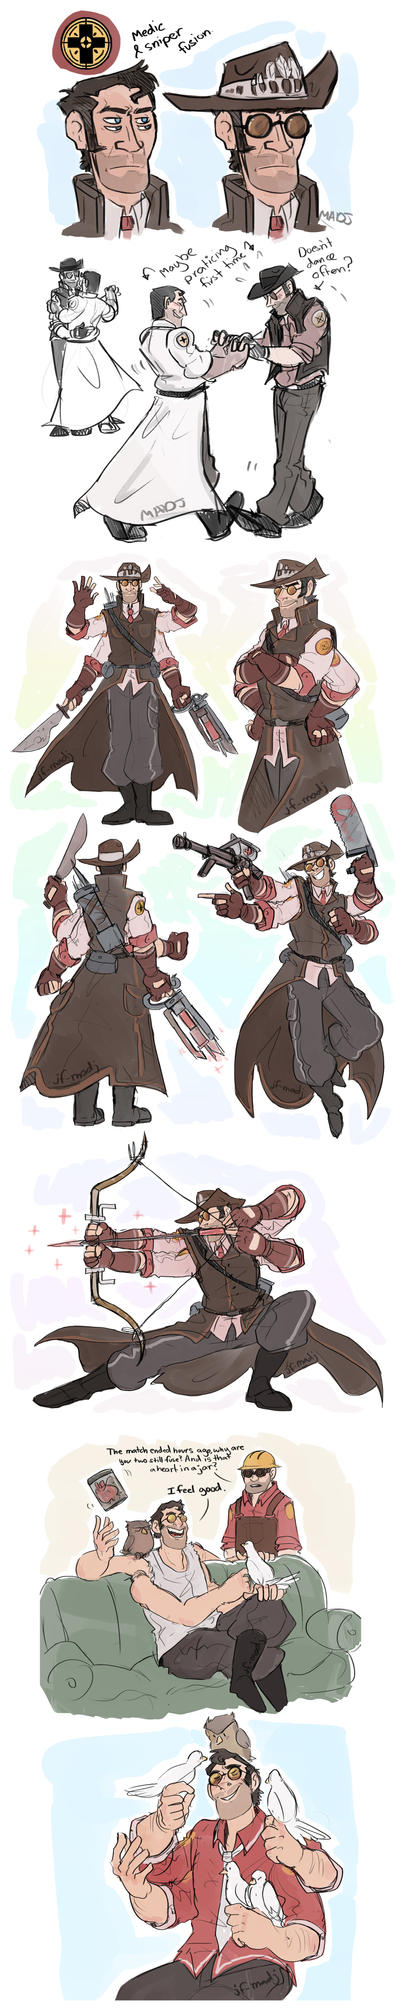 TF2 Fusion- Medic and Sniper by MadJesters1